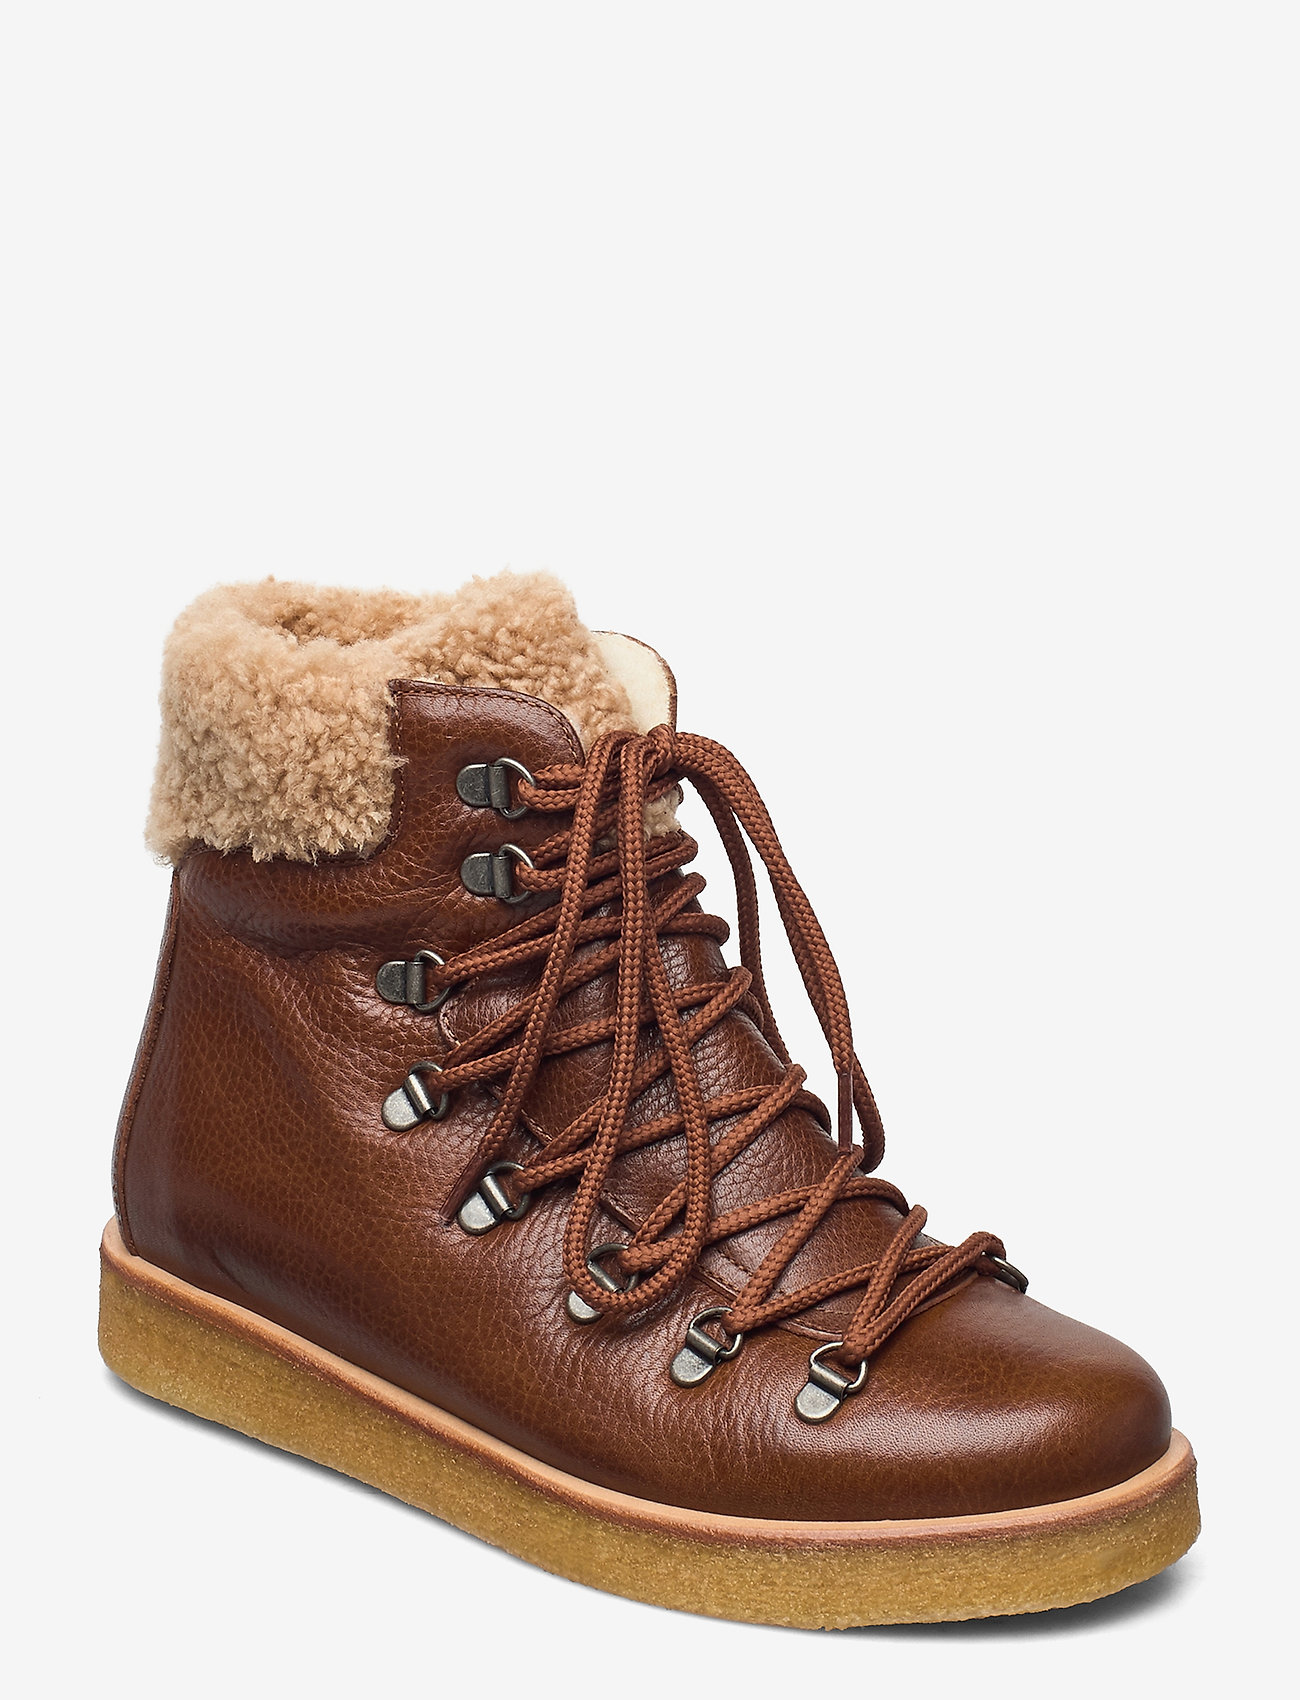 ANGULUS - Boots - flat - with laces - flade ankelstøvler - 2509/2030 cognac/light brown - 0